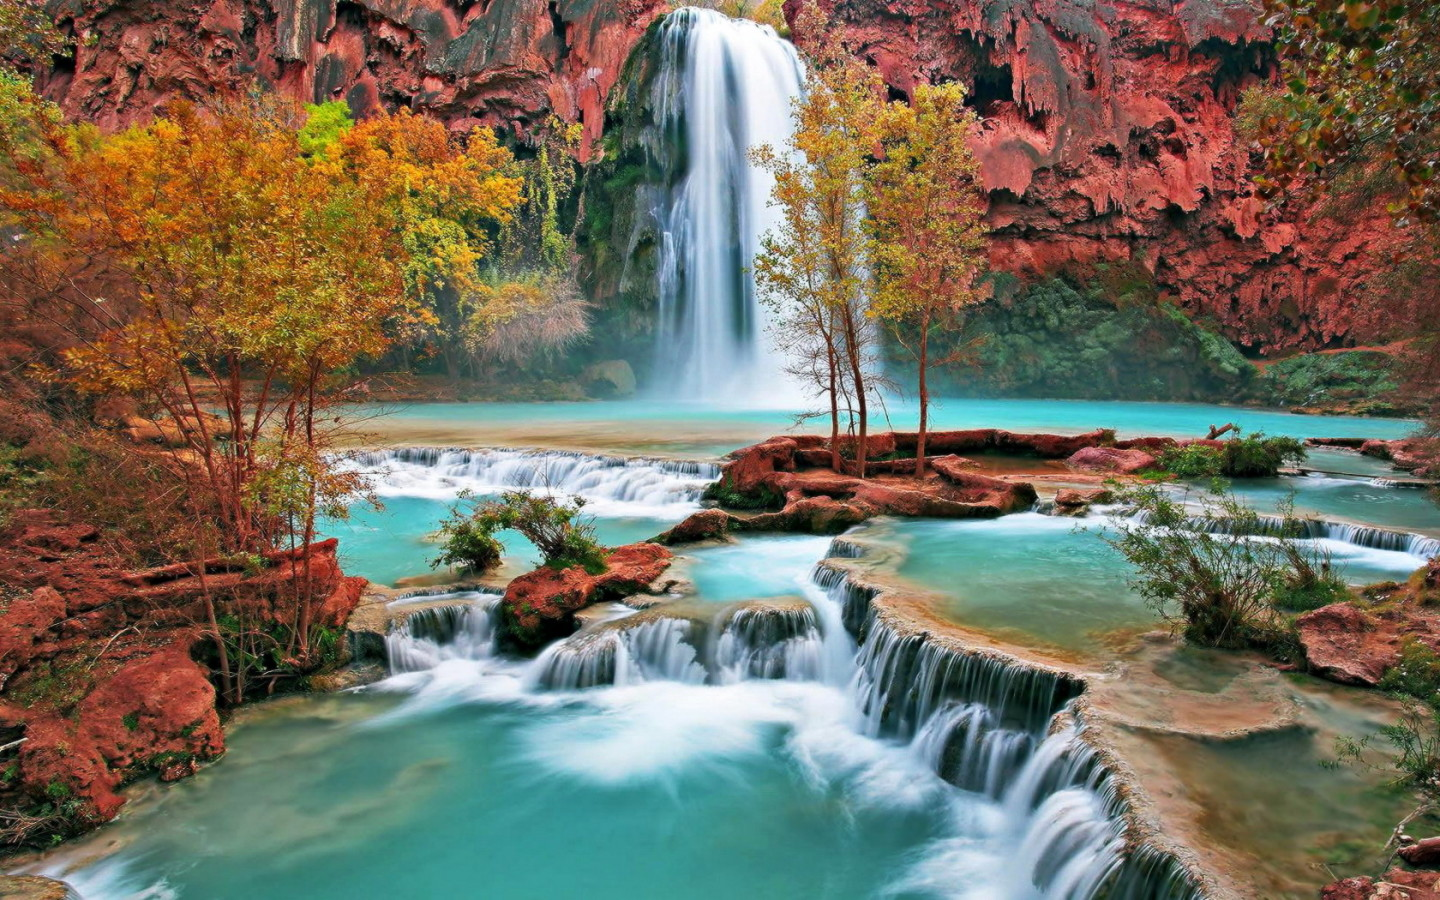 Desktop Waterfall Wallpaper Download Nature Beauty NextChanel 1440x900